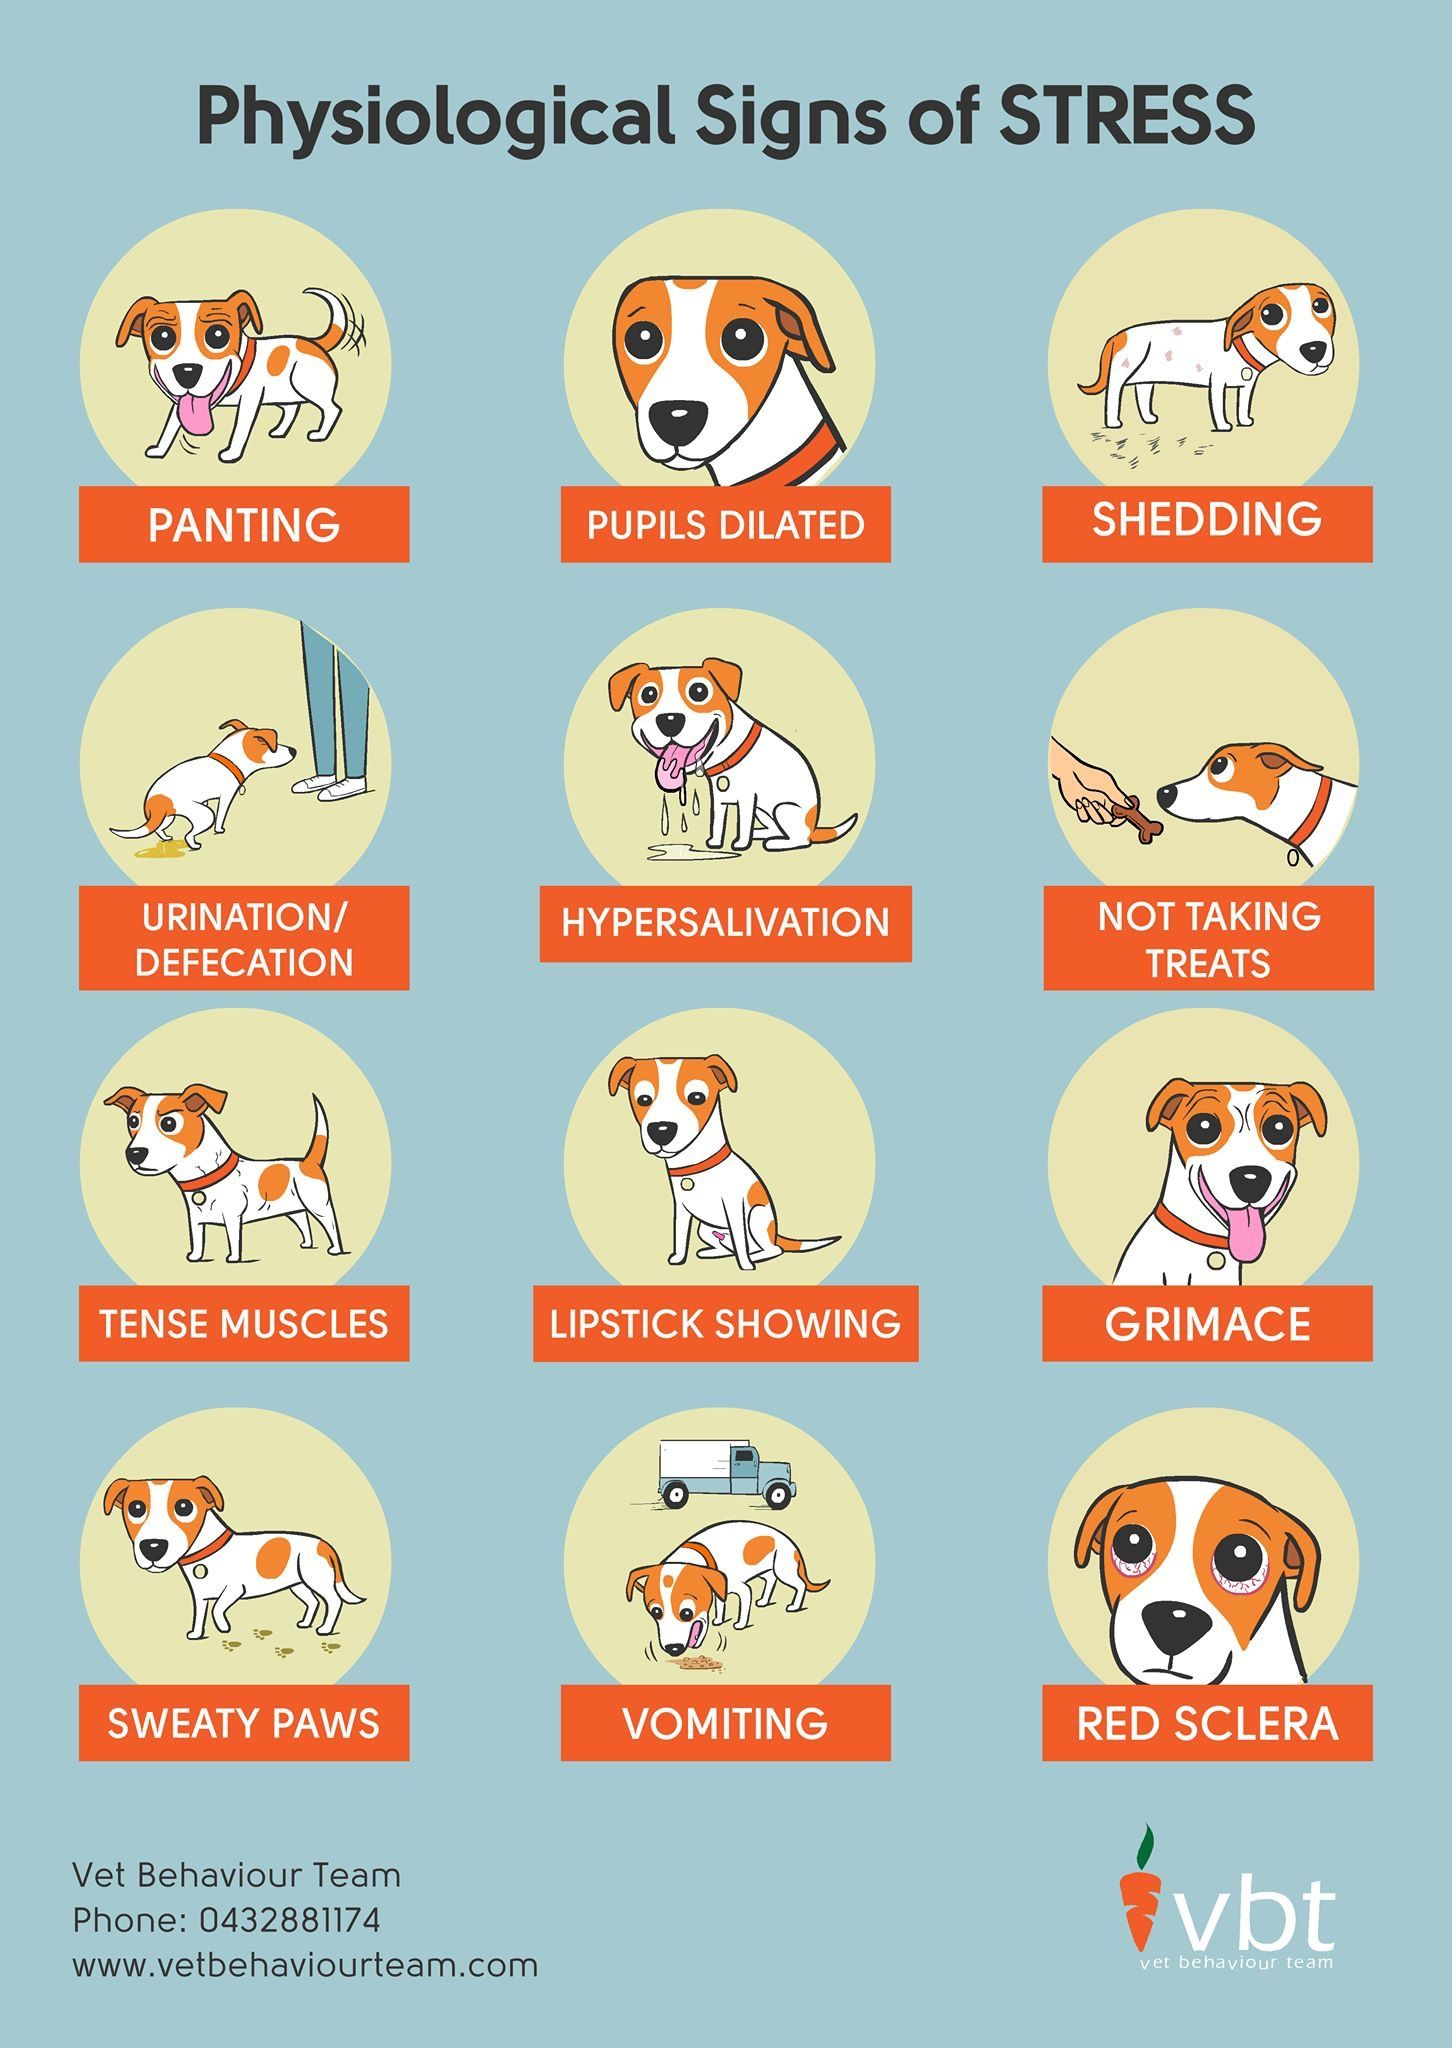 cartoons of physiological signs of stress for dogs